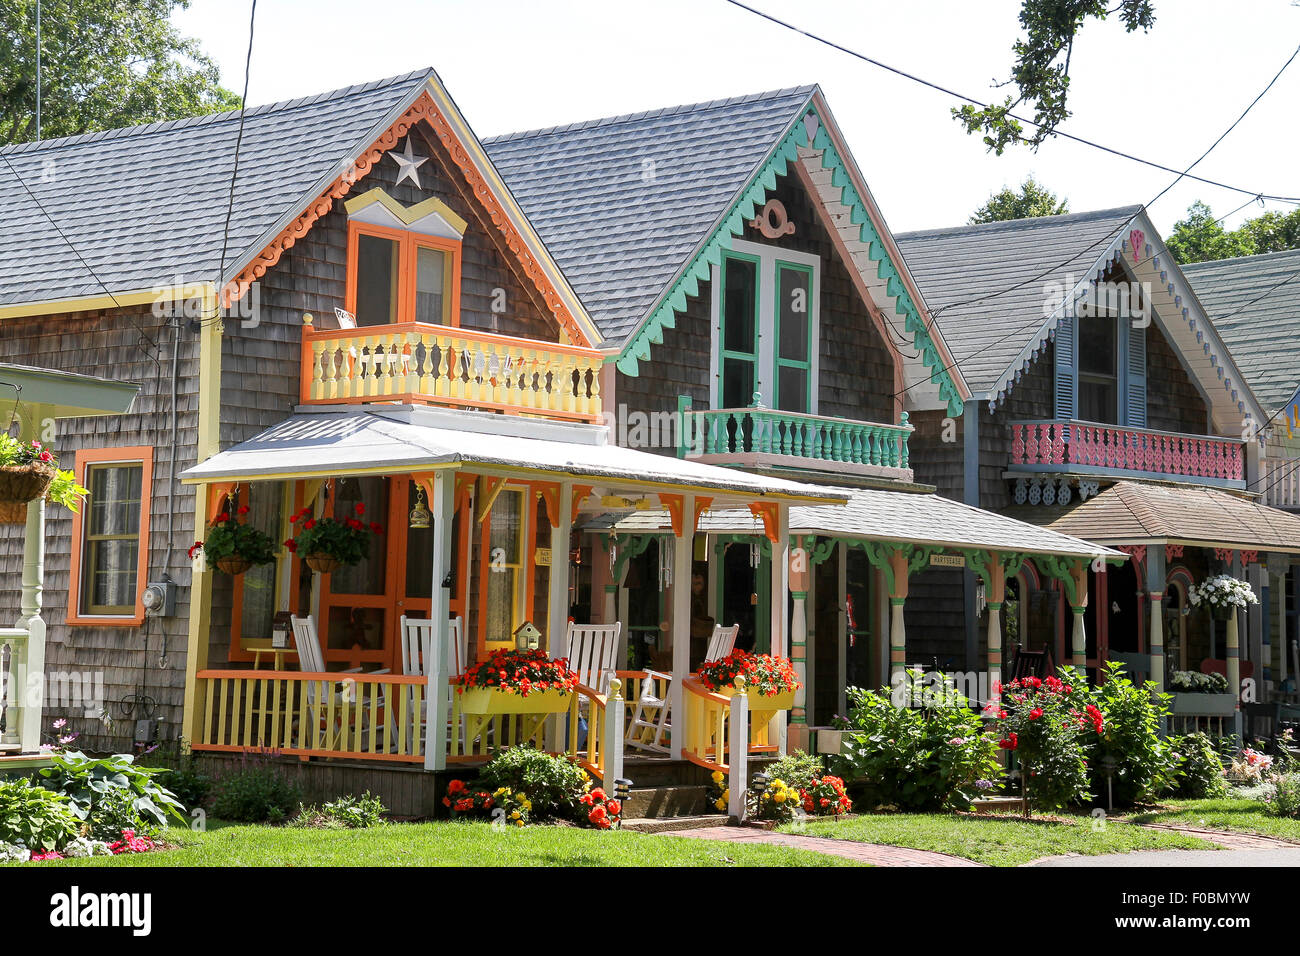 Cottages Martha S Vineyard Camp Meeting Association Oak Bluffs Stock Photo Alamy